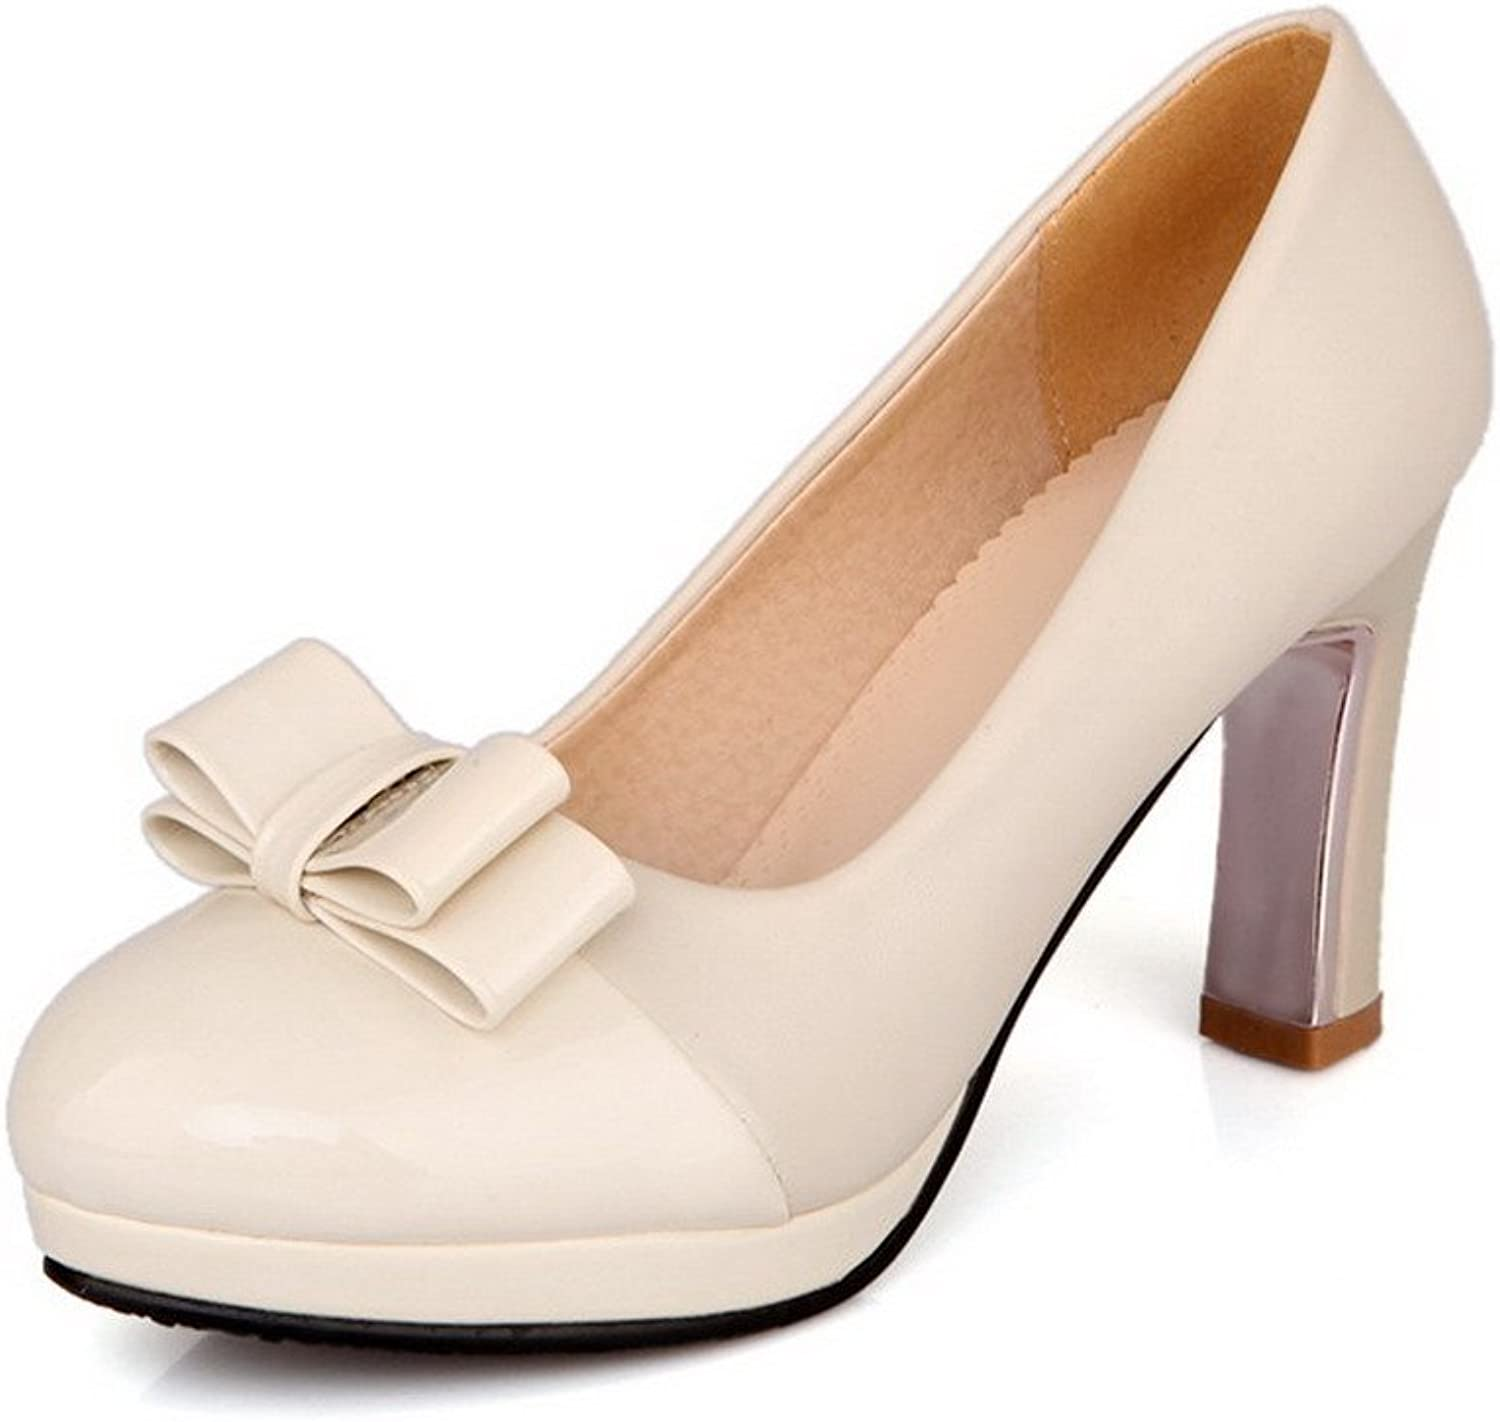 AllhqFashion Women's Patent Leather Solid Pull On Round Closed Toe High Heels Pumps-shoes